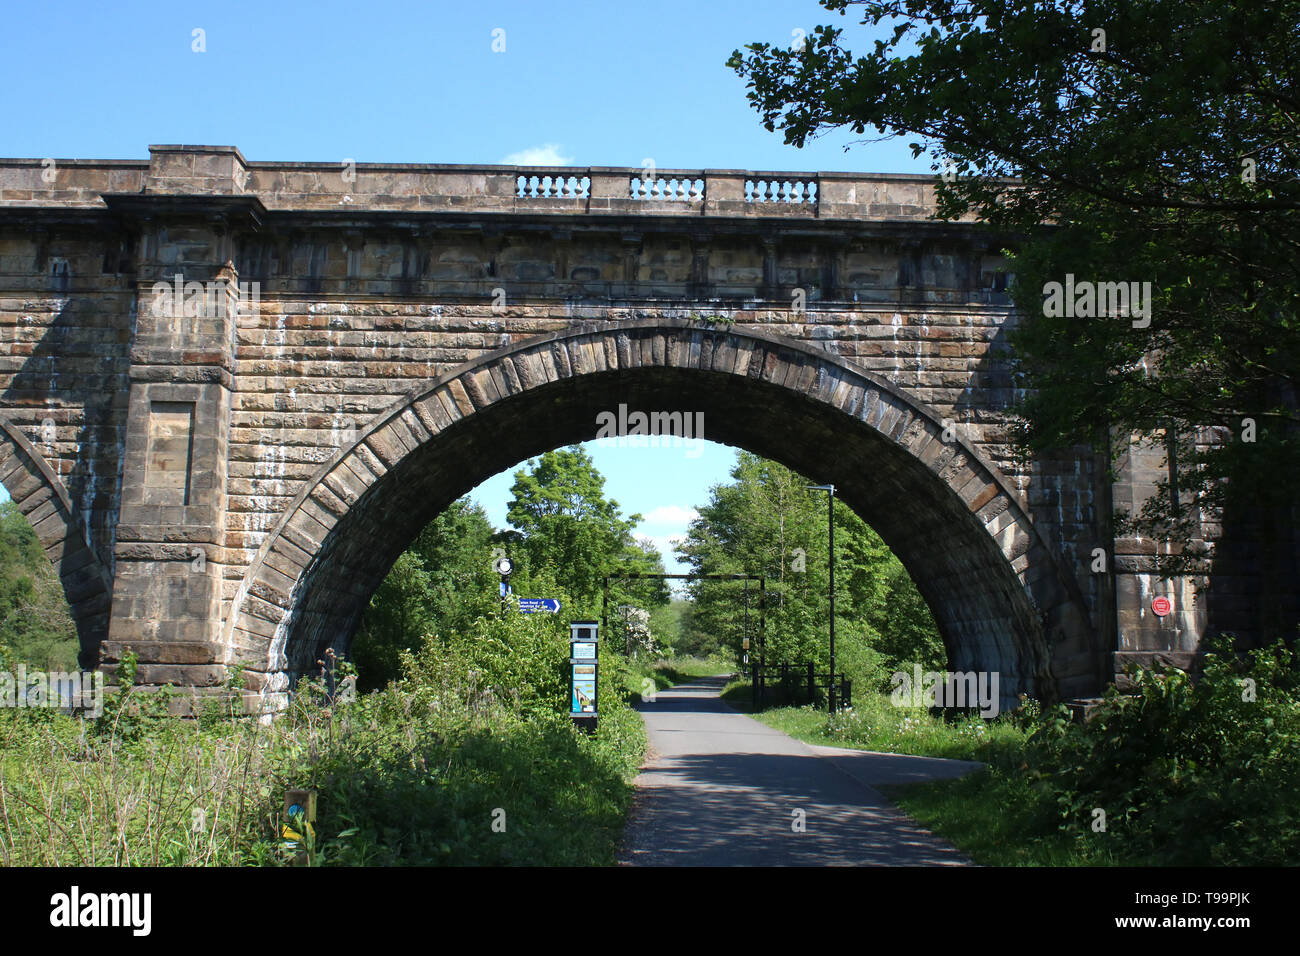 View along the Lune Valley Ramble as it passes under the Lune Aqueduct in Lancaster, Lancashire, England on the track bed of an old railway line. - Stock Image